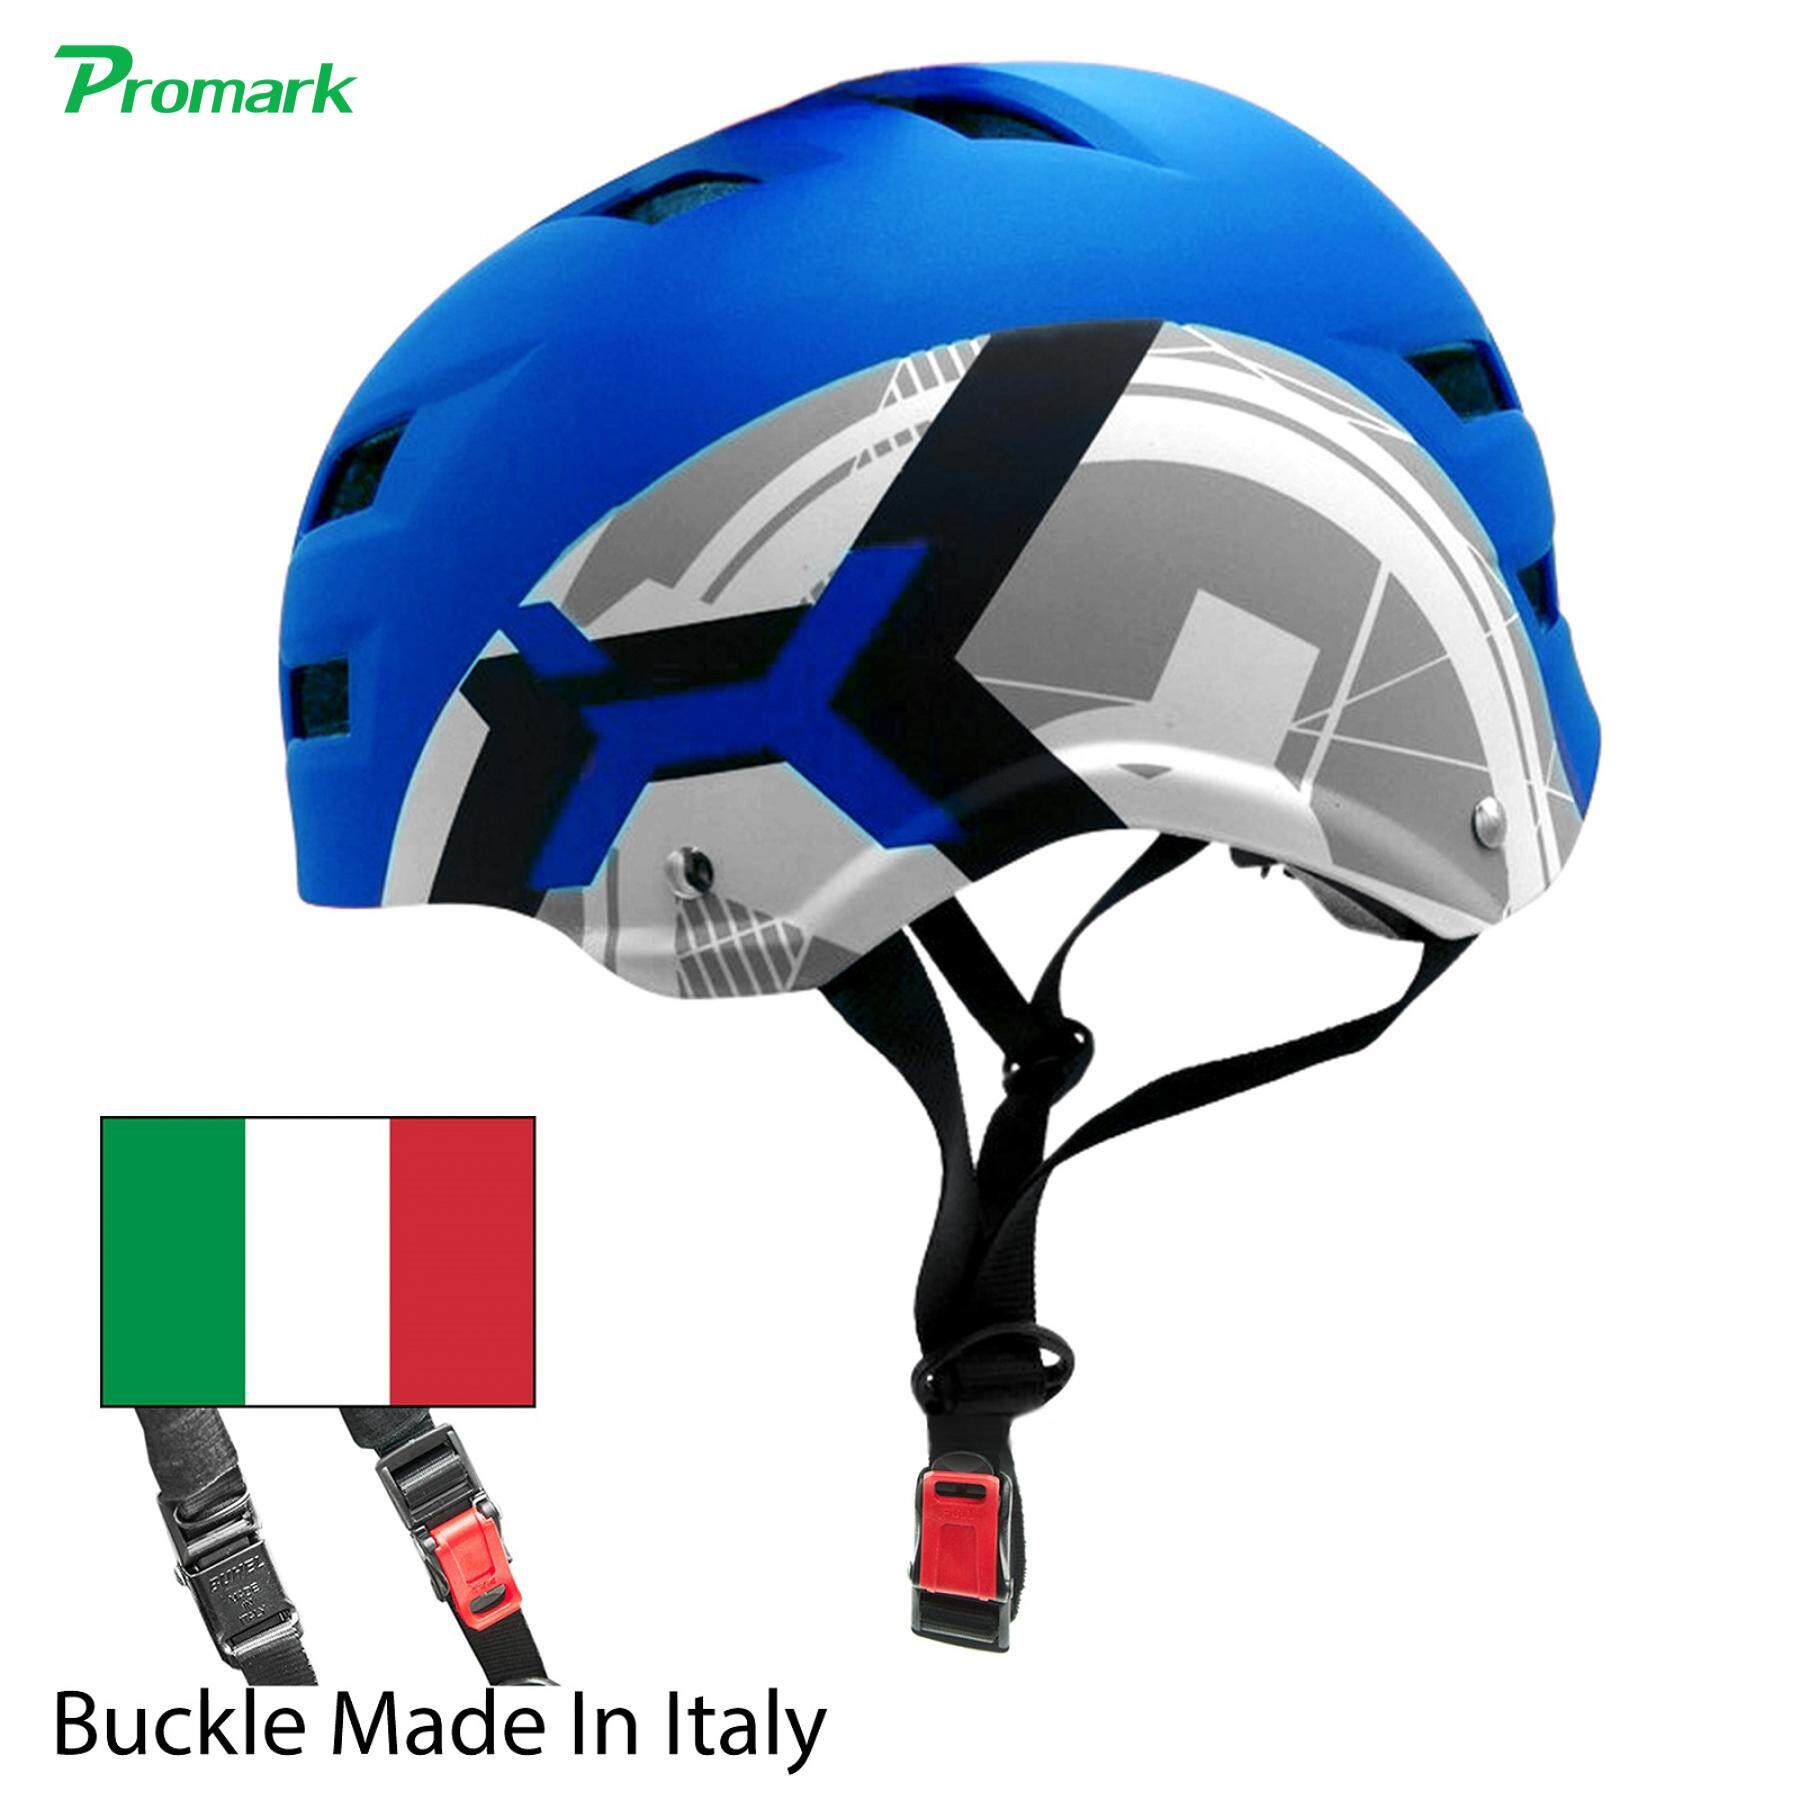 PROMARK หมวกกันน็อค Premium EXTREME SPORTS HELMET, Chin Buckle ( Made In Italy ) EPS Foam, Adjustable Size (Blue) หมวกจักรยาน Option :